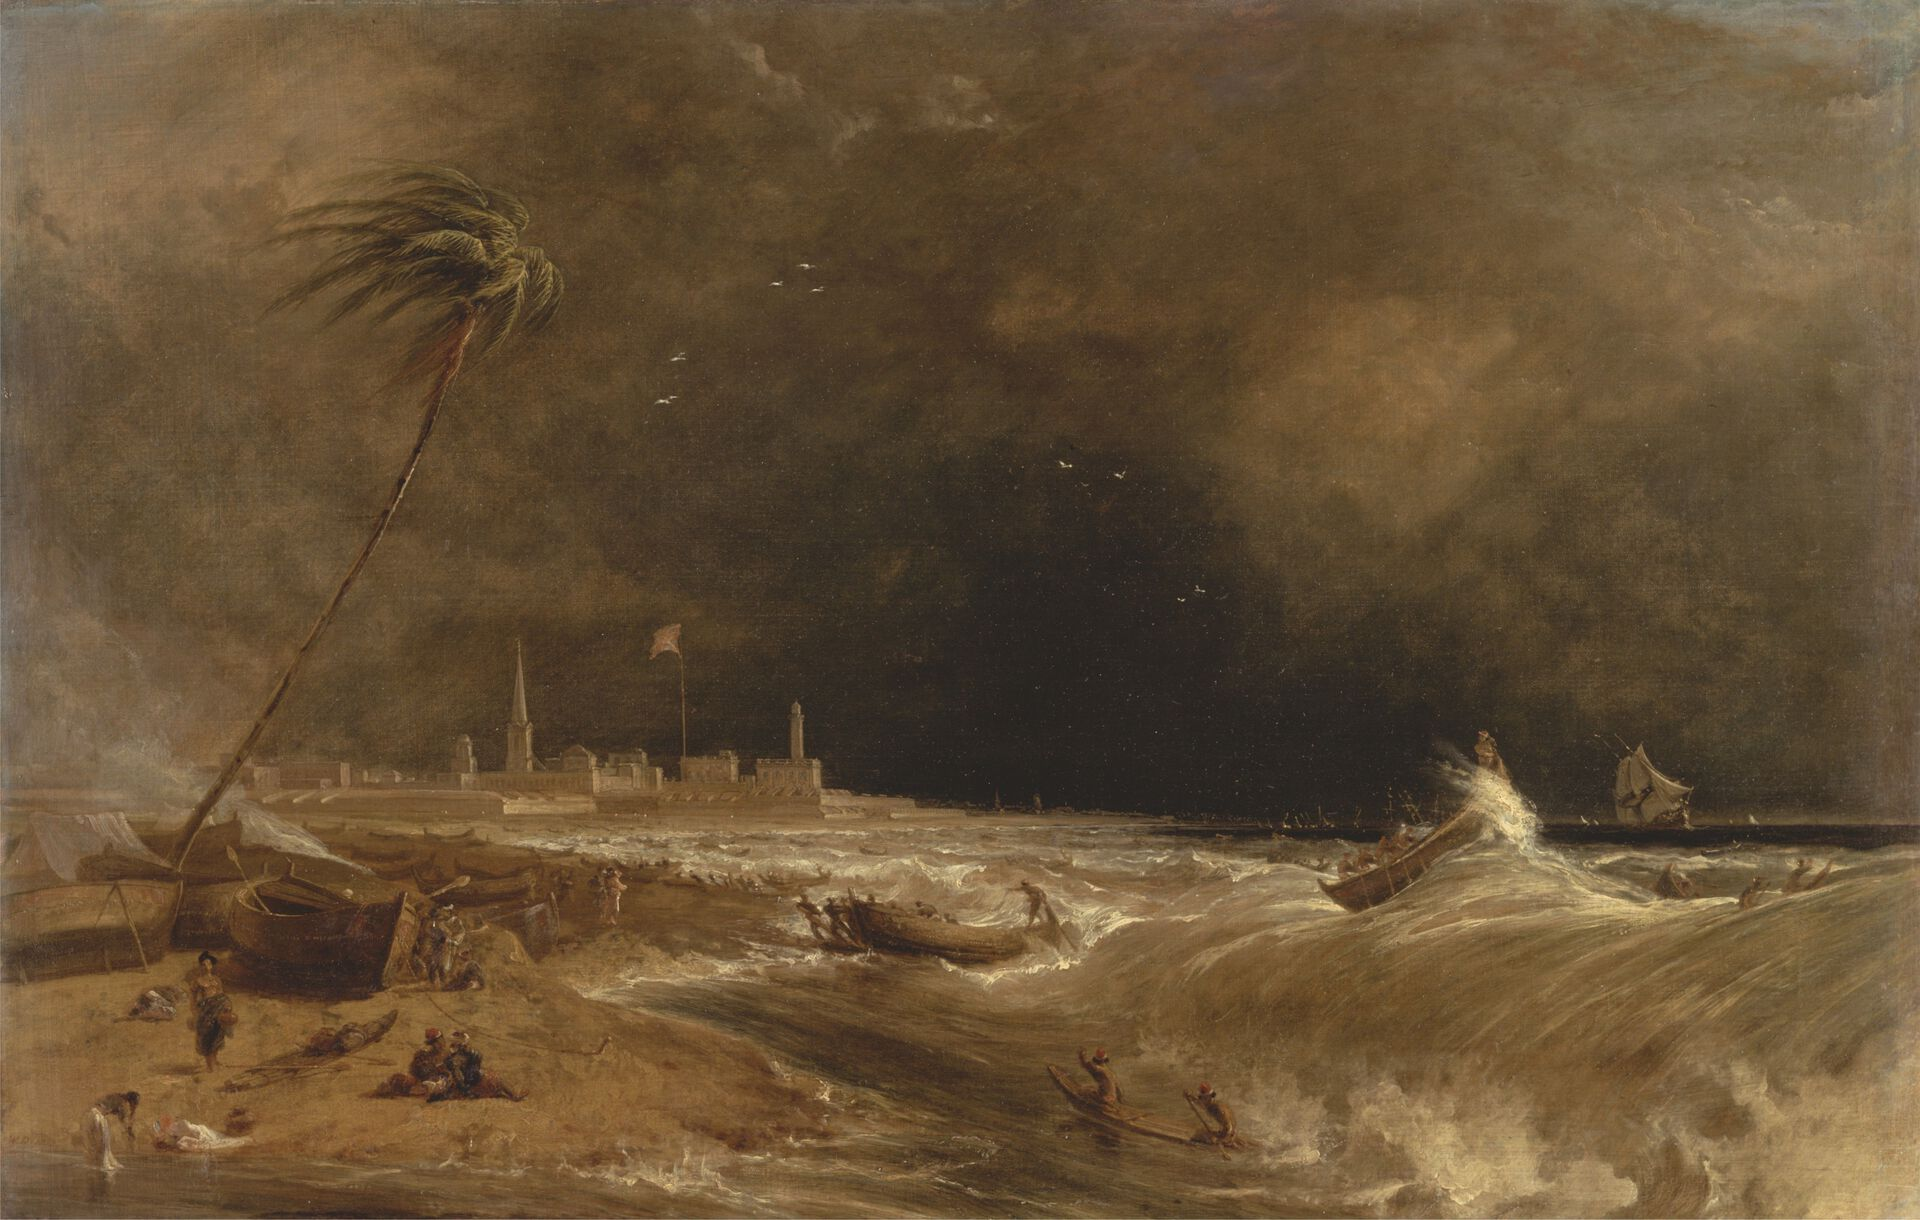 William Daniell, Madras, or Fort St. George, in the Bay of Bengal—A Squall Passing Off, 1833, oil on canvas, Yale Center for British Art, Paul Mellon Collection